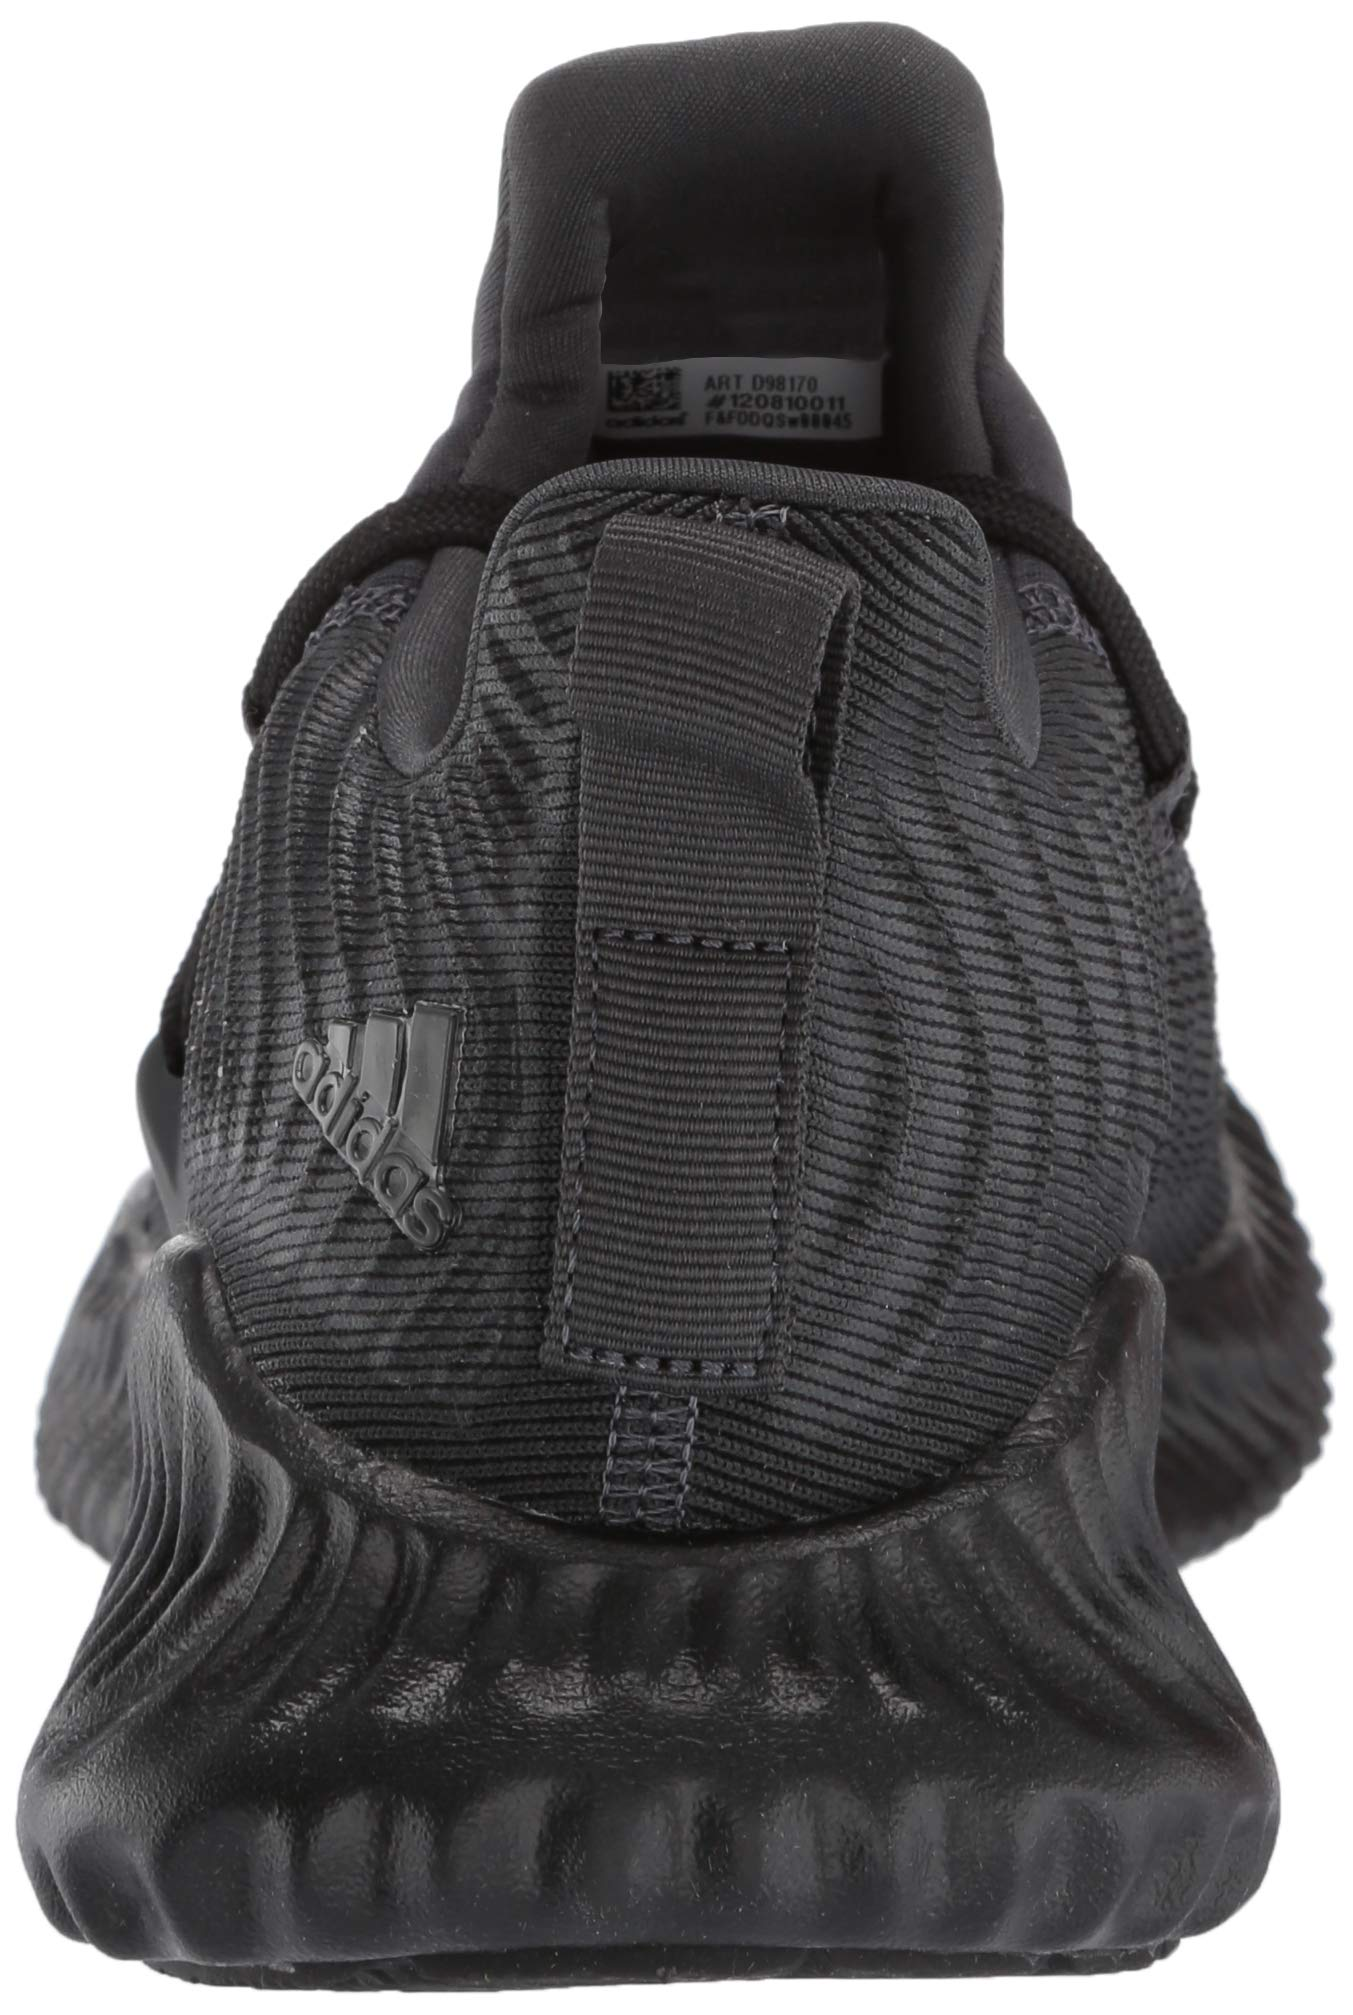 Adidas Kids Alphabounce Instinct, Carbon/Core Black/Carbon, 2 M US Little Kid by adidas (Image #2)